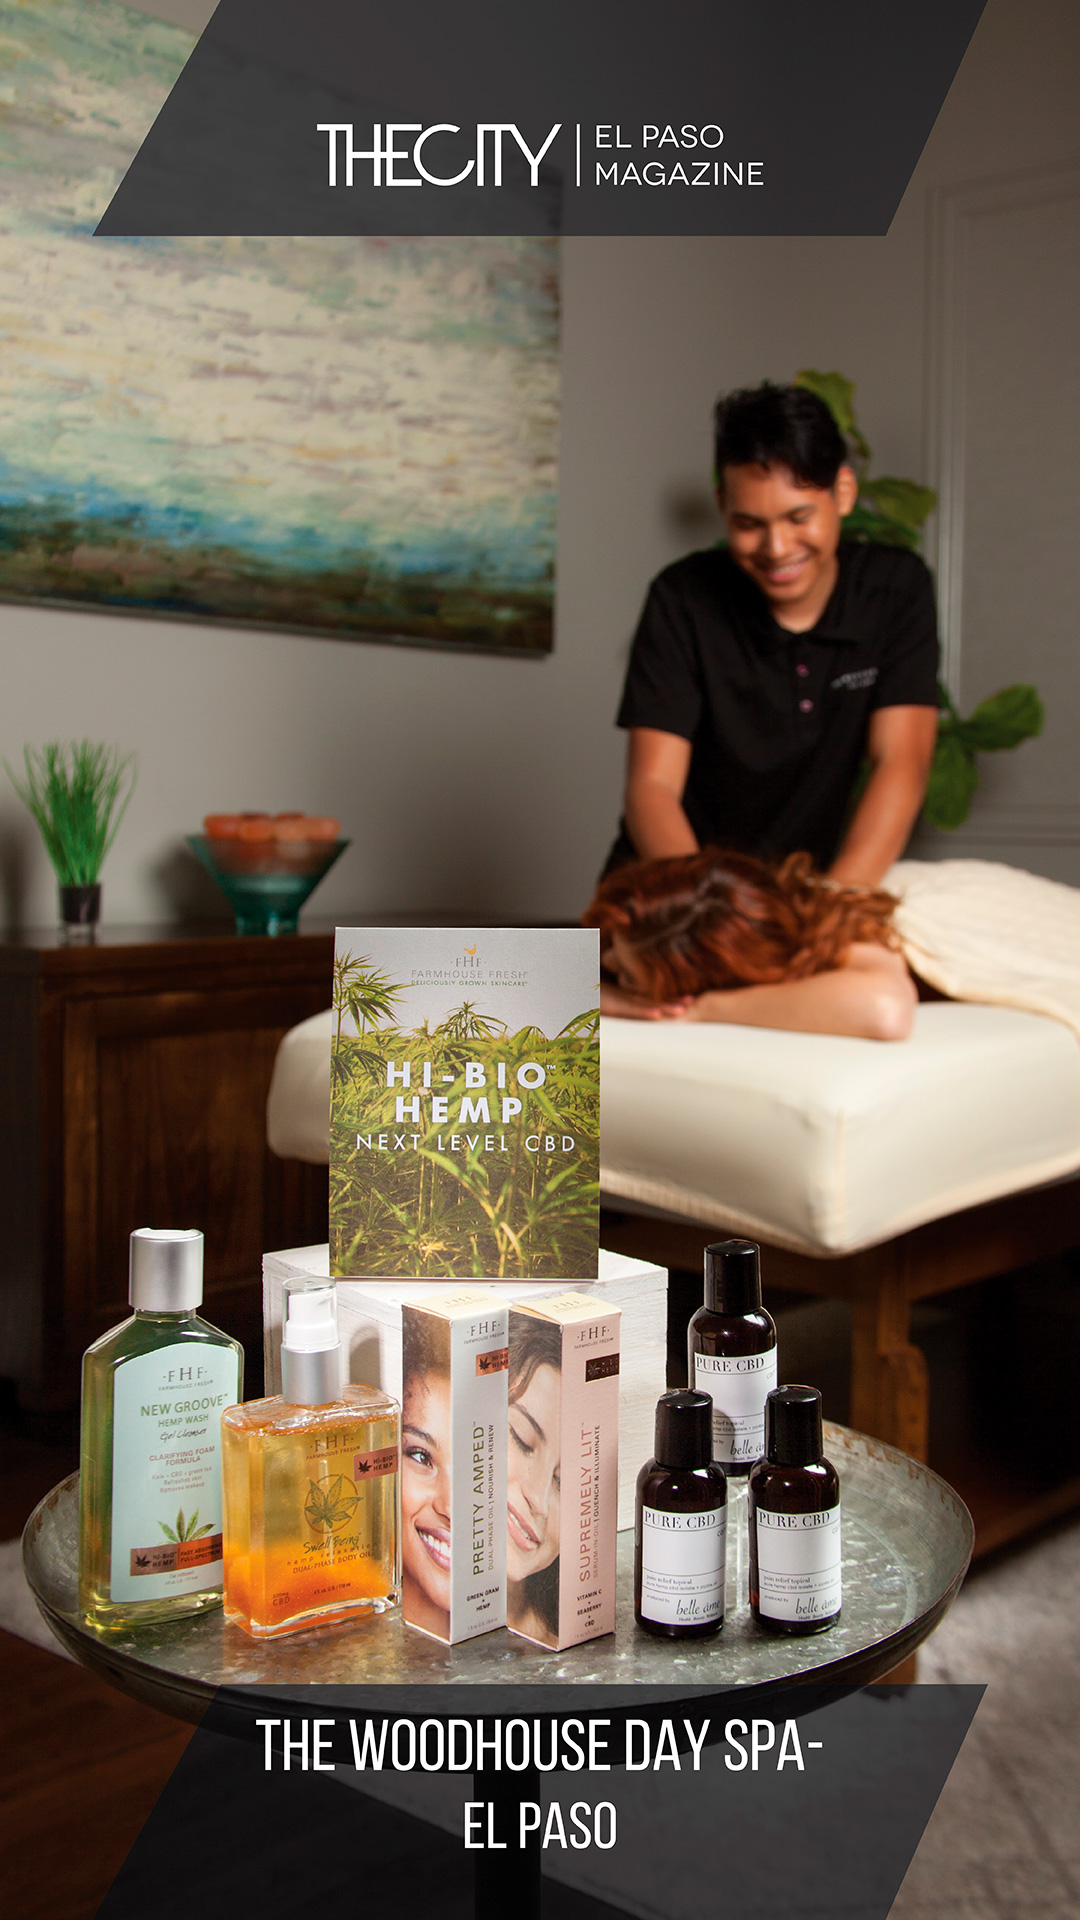 Healthcare Professionals:  The woodhouse day spa- el paso